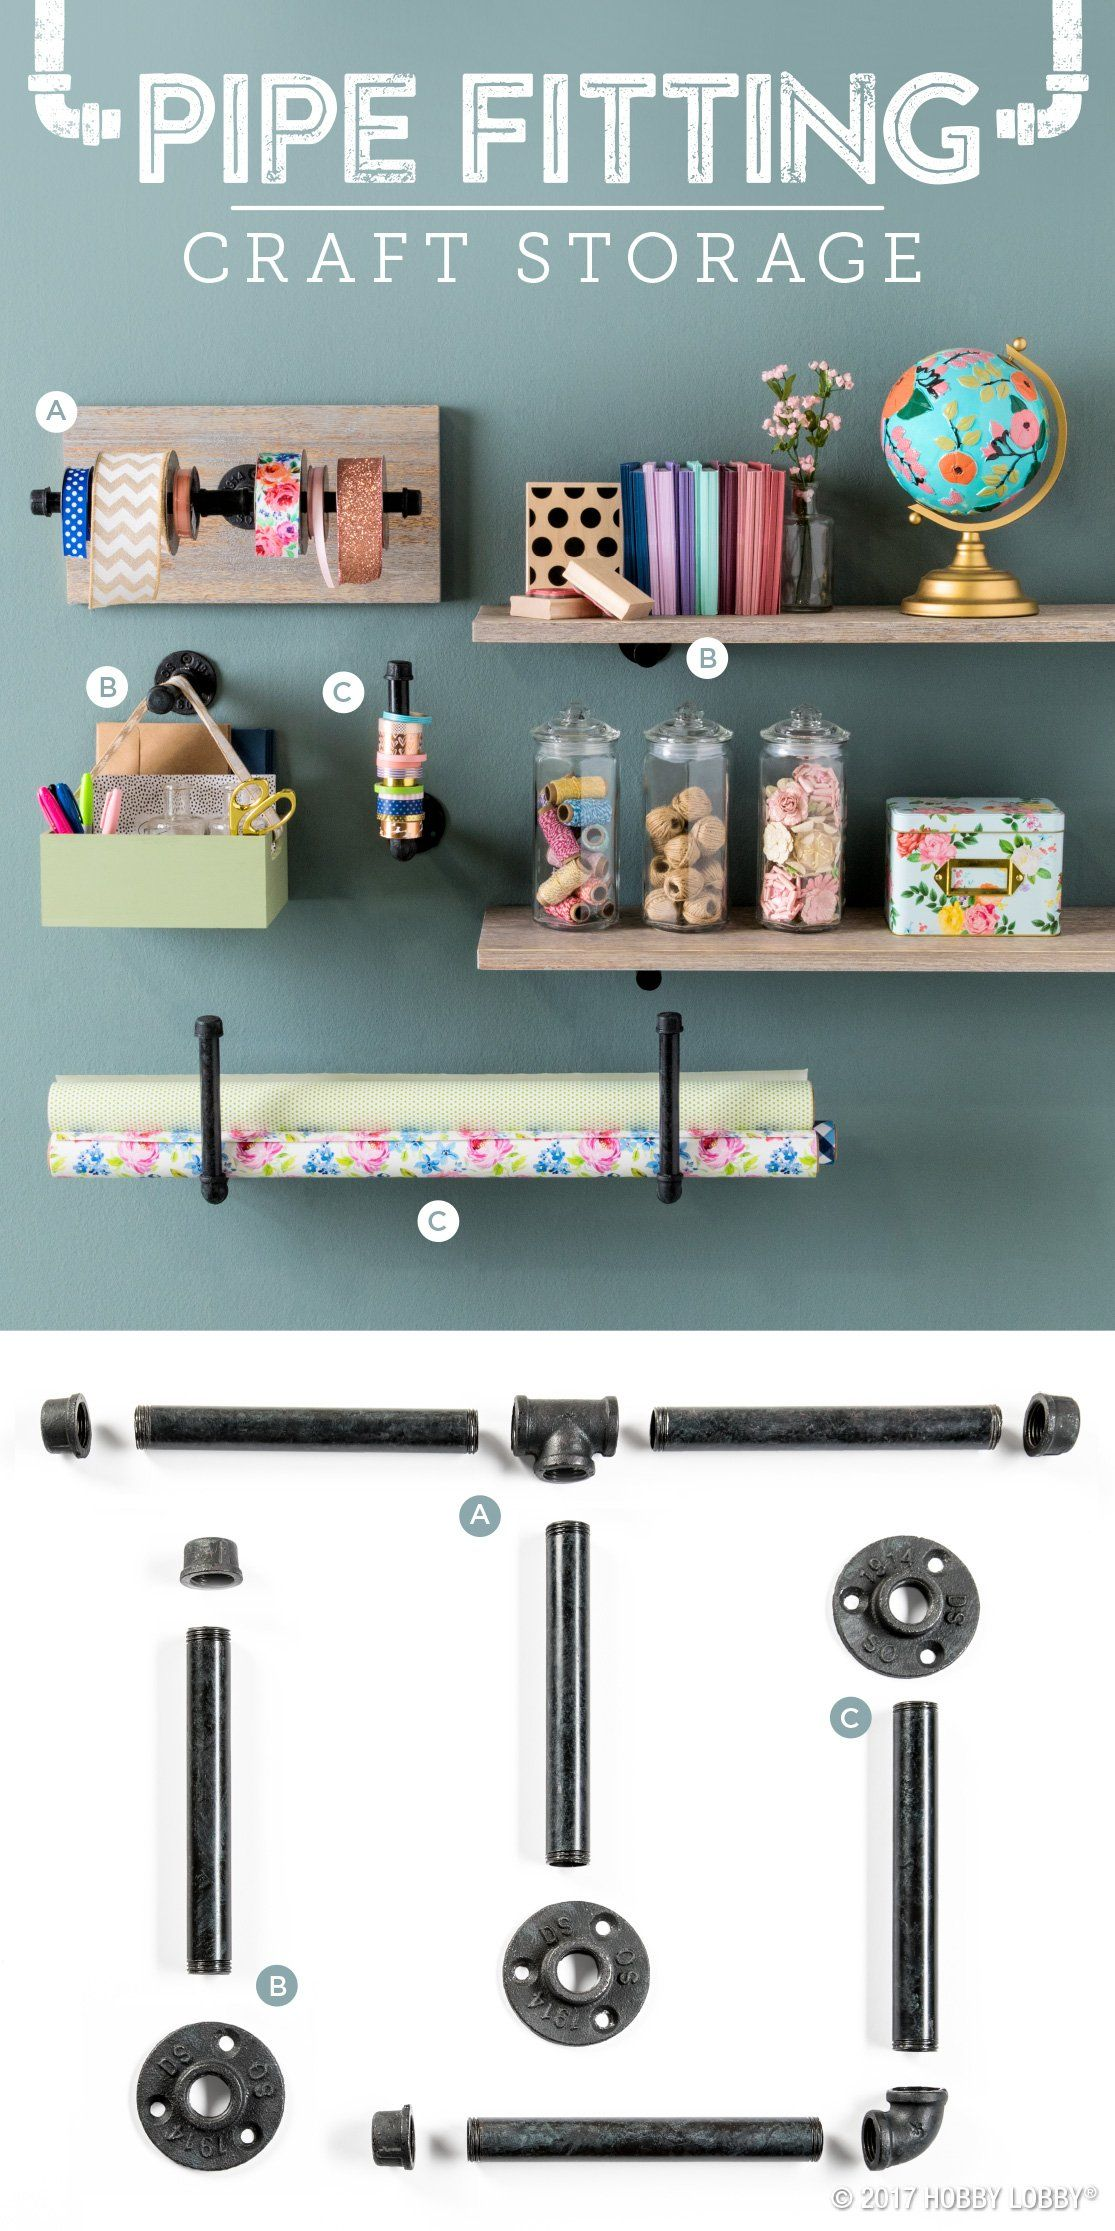 Ready To Declutter Your Craft Space? Get Stylishly Organized With Unique  Storage Solutions!